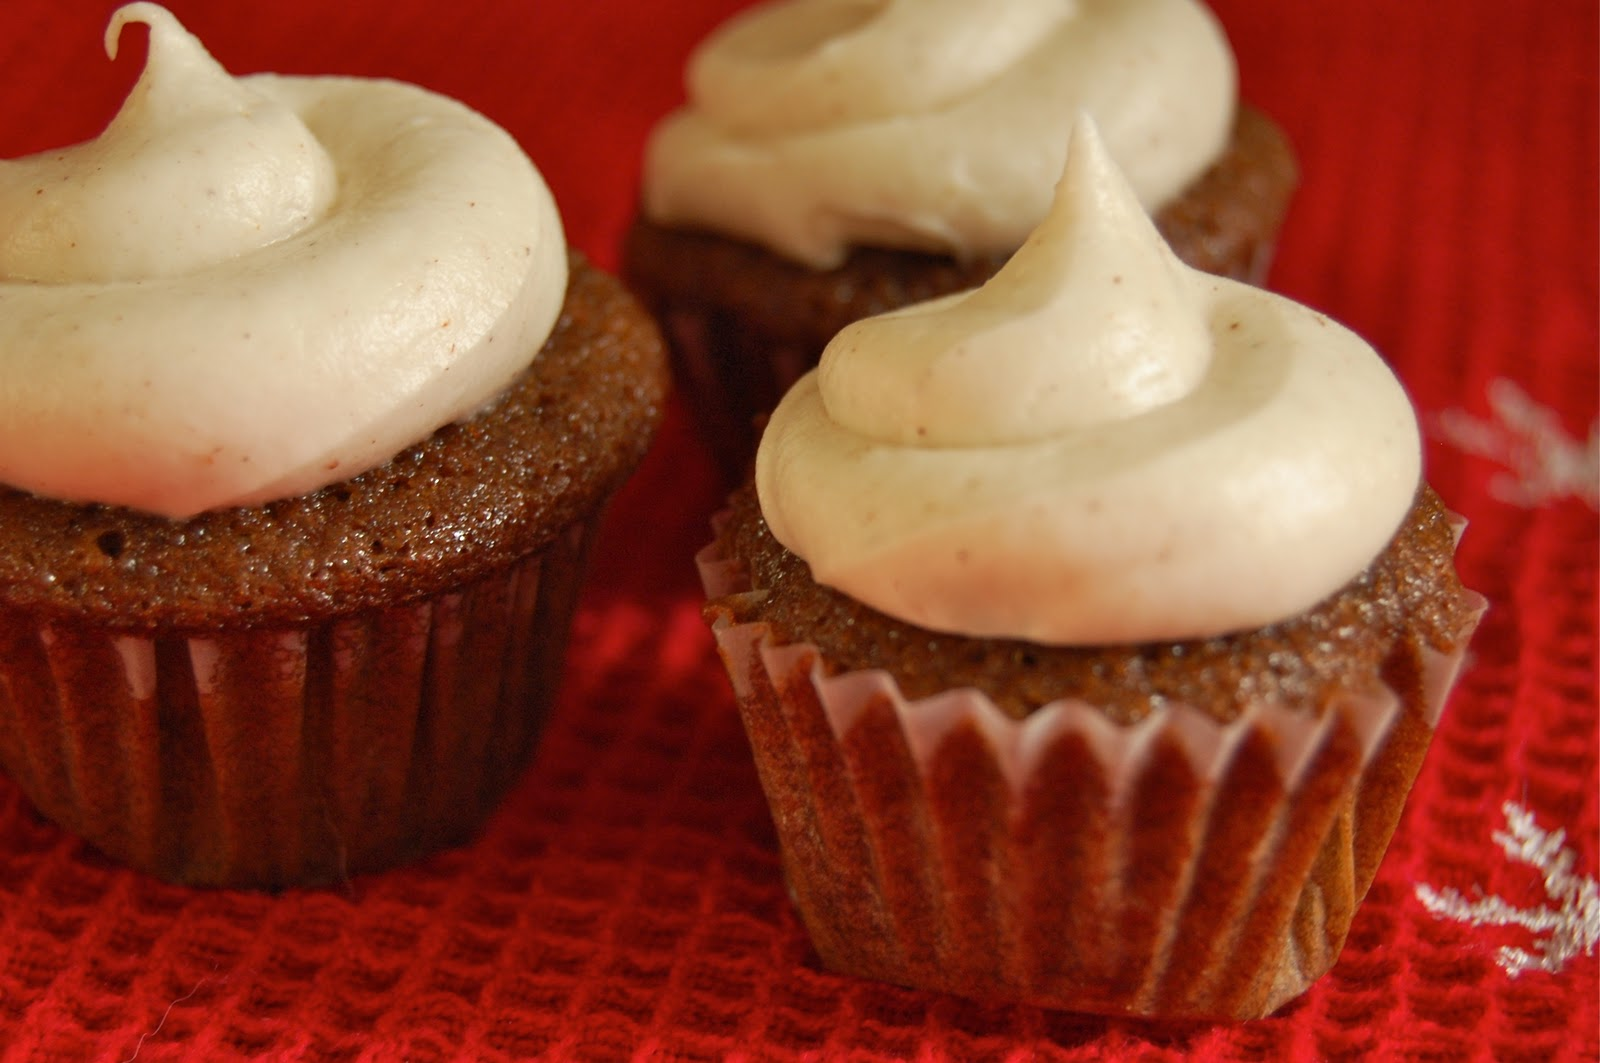 Much Kneaded: Gingerbread Cupcakes with Cinnamon Cream Cheese Frosting